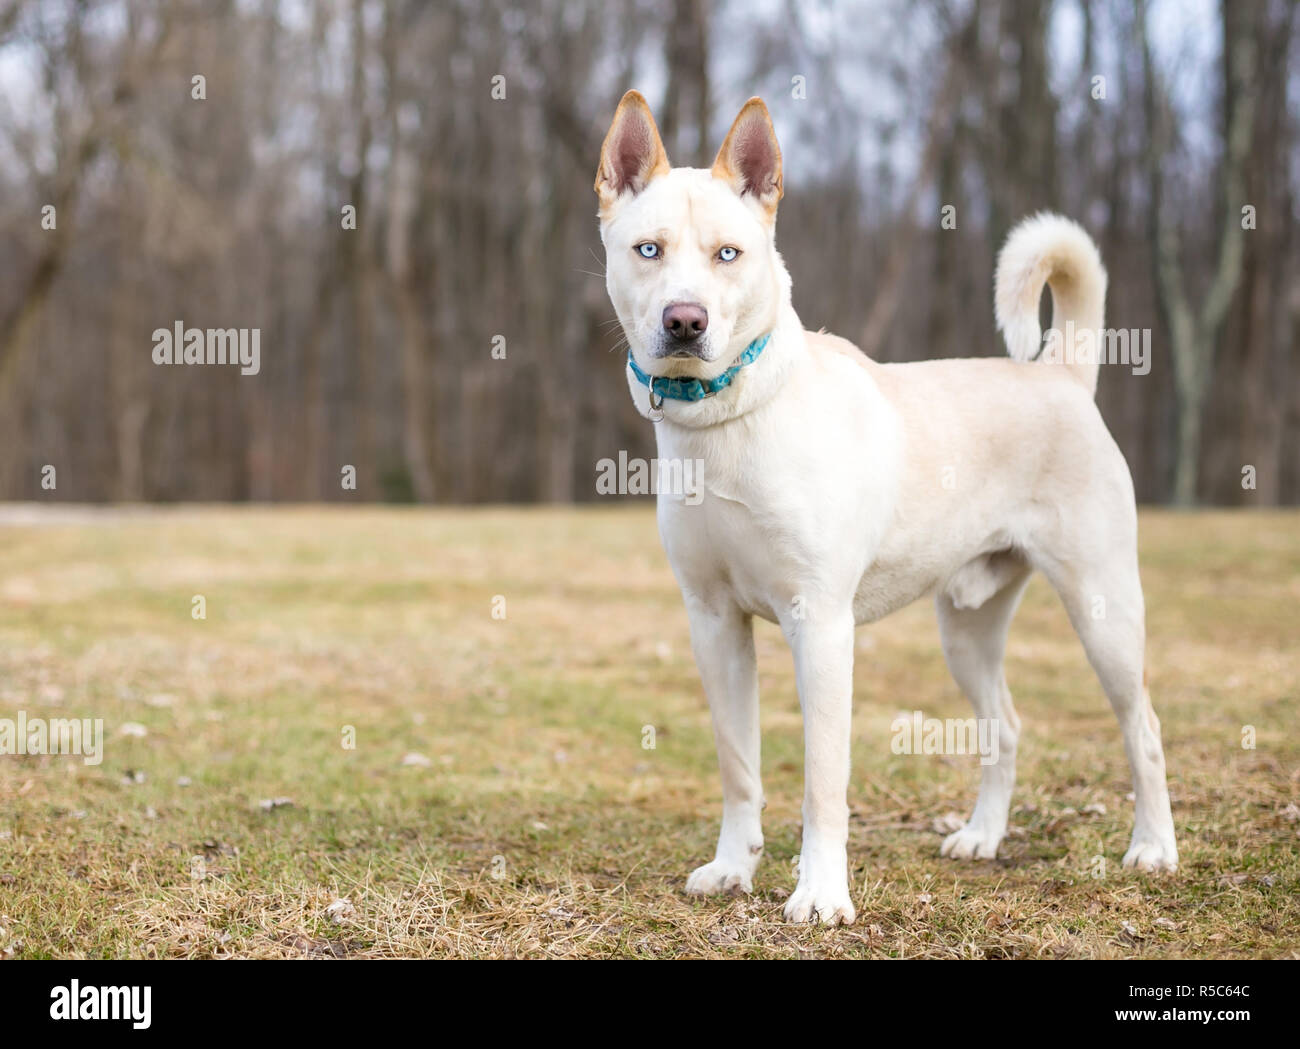 A cream colored Siberian Husky dog with blue eyes standing outdoors - Stock Image